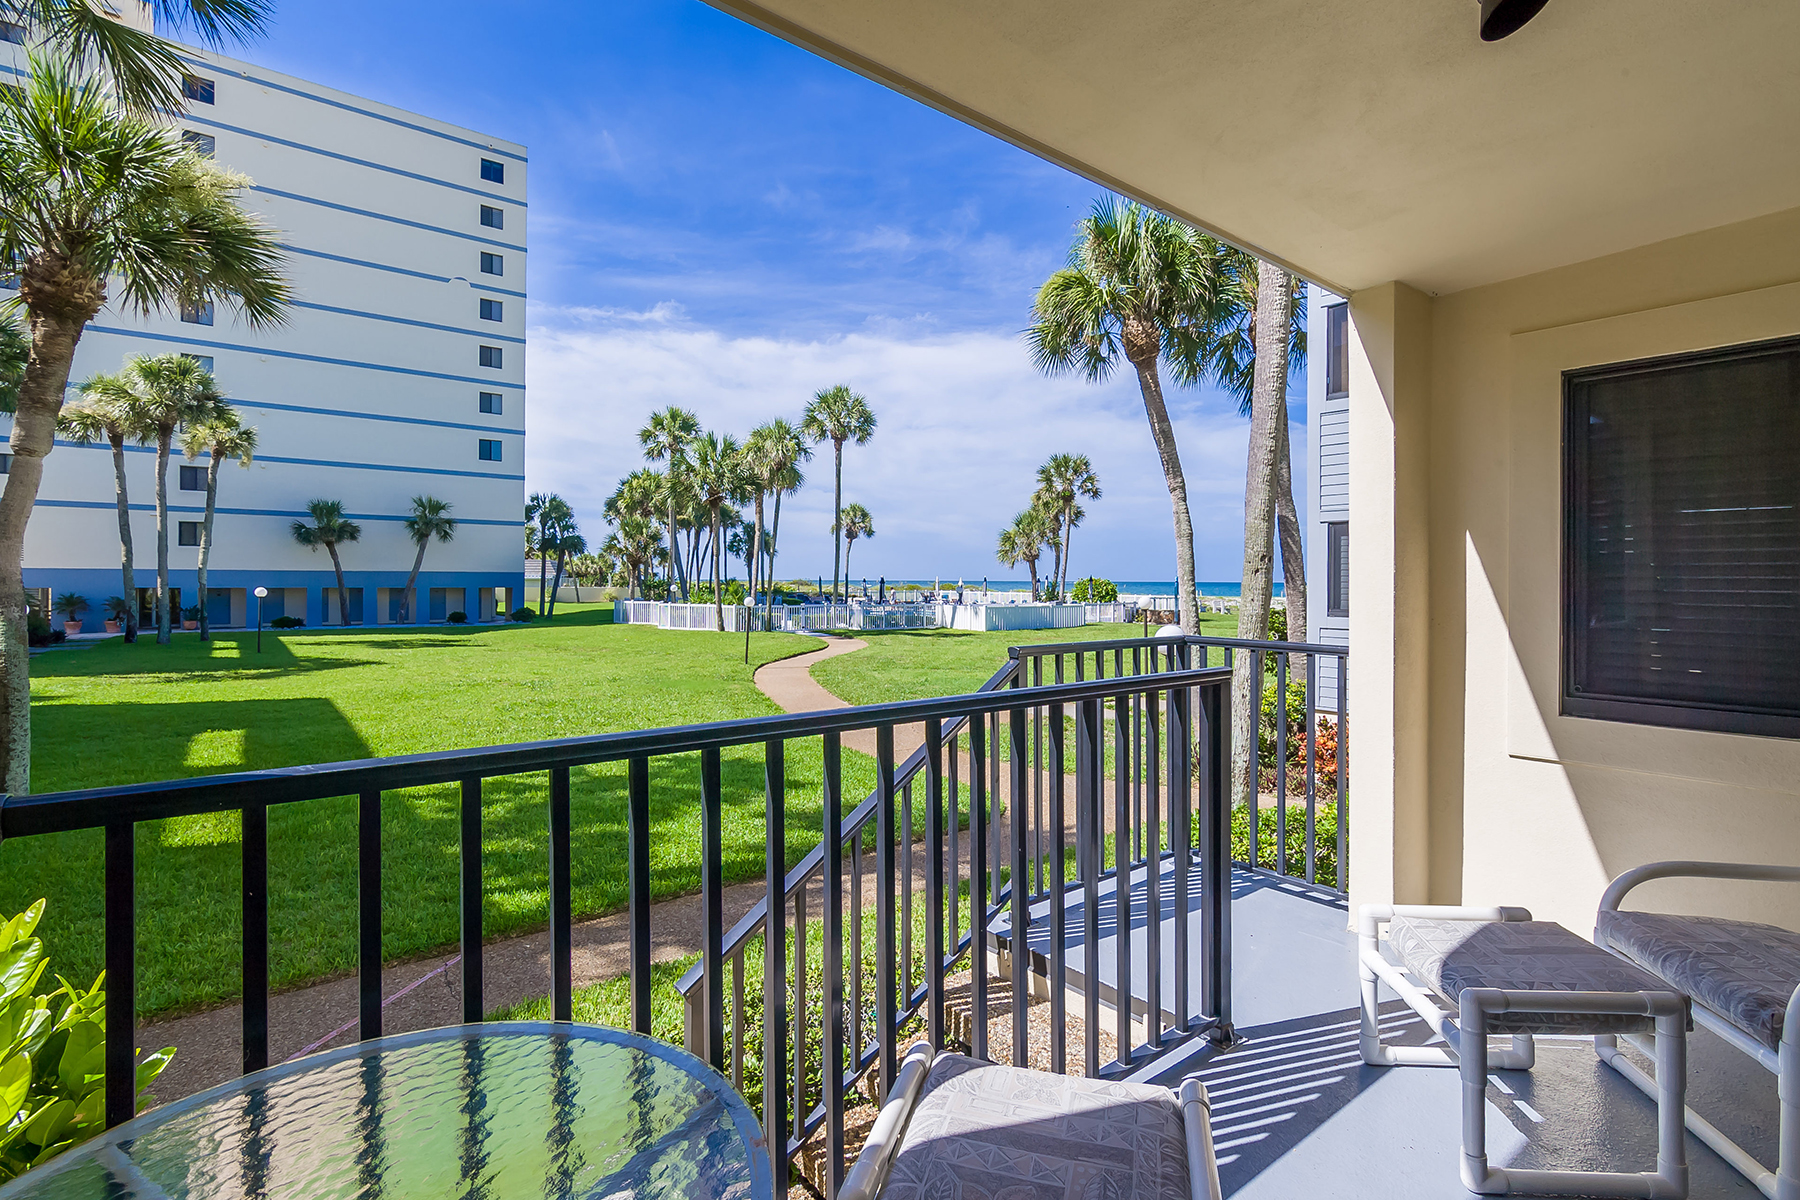 Condominium for Sale at VENICE ISLAND - MACARTHUR BEACH 700 Golden Beach Blvd 118 Venice, Florida, 34285 United States